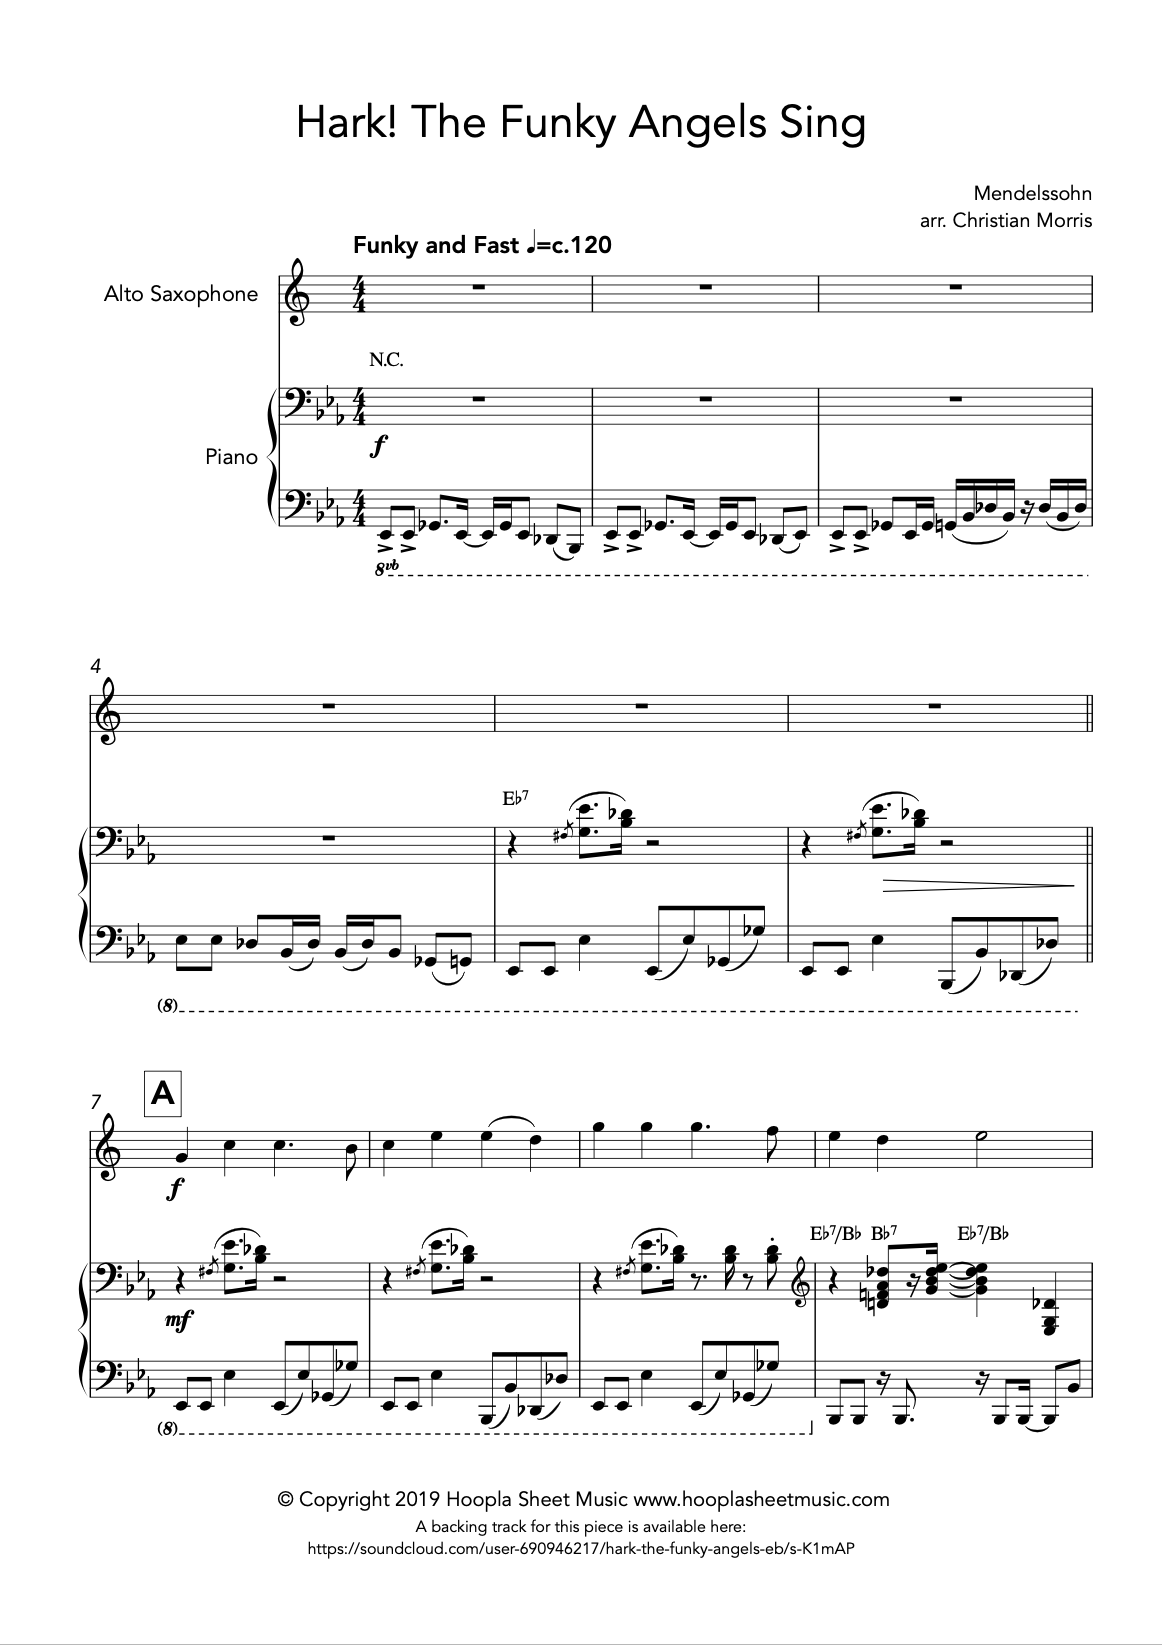 Hark! The Funky Angels Sing (Alto Saxophone)